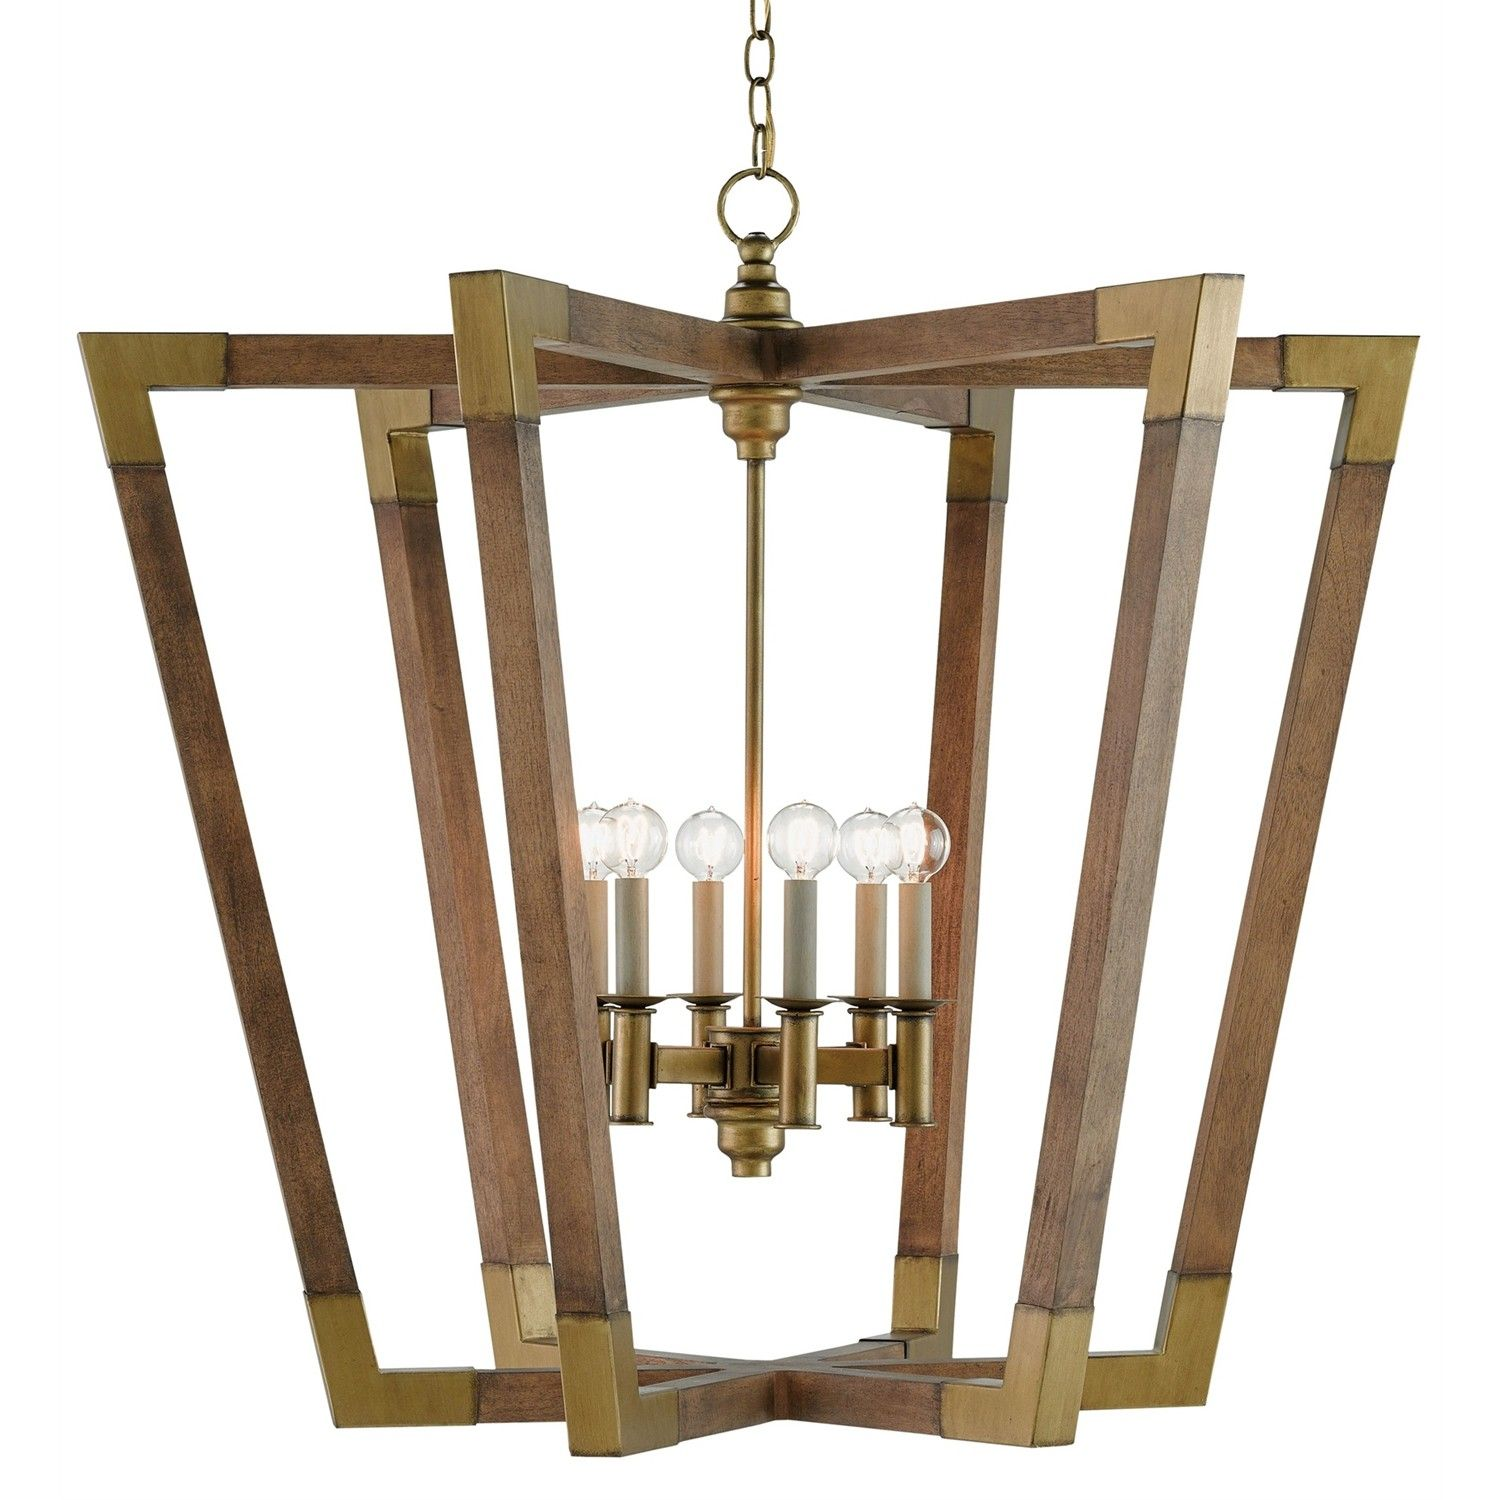 Garamond chandelier by currey and company material woodwrought garamond chandelier by currey and company material woodwrought iron finish chestnut mozeypictures Images